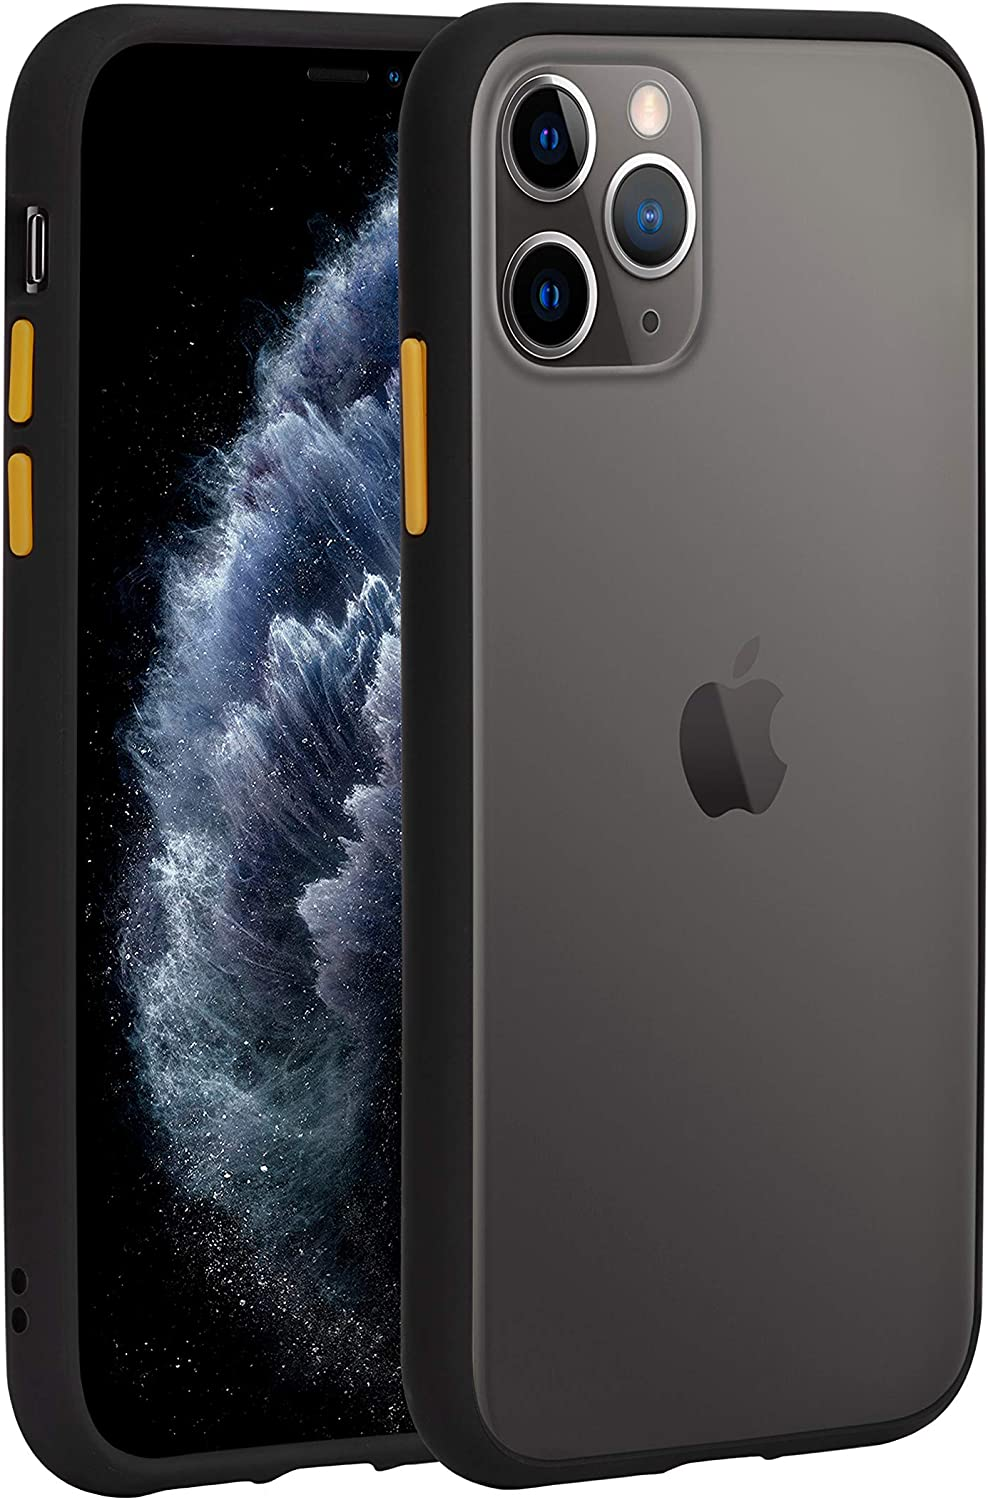 AlphaCell Translucent Matte Bumper Case for iPhone 11 Pro (5.8 Inch), Protective Frosted Slim Fit Ultra-Thin Cover, Shockproof Drop Protection with Soft TPU Edges and Hard PC Back | Black/Yellow